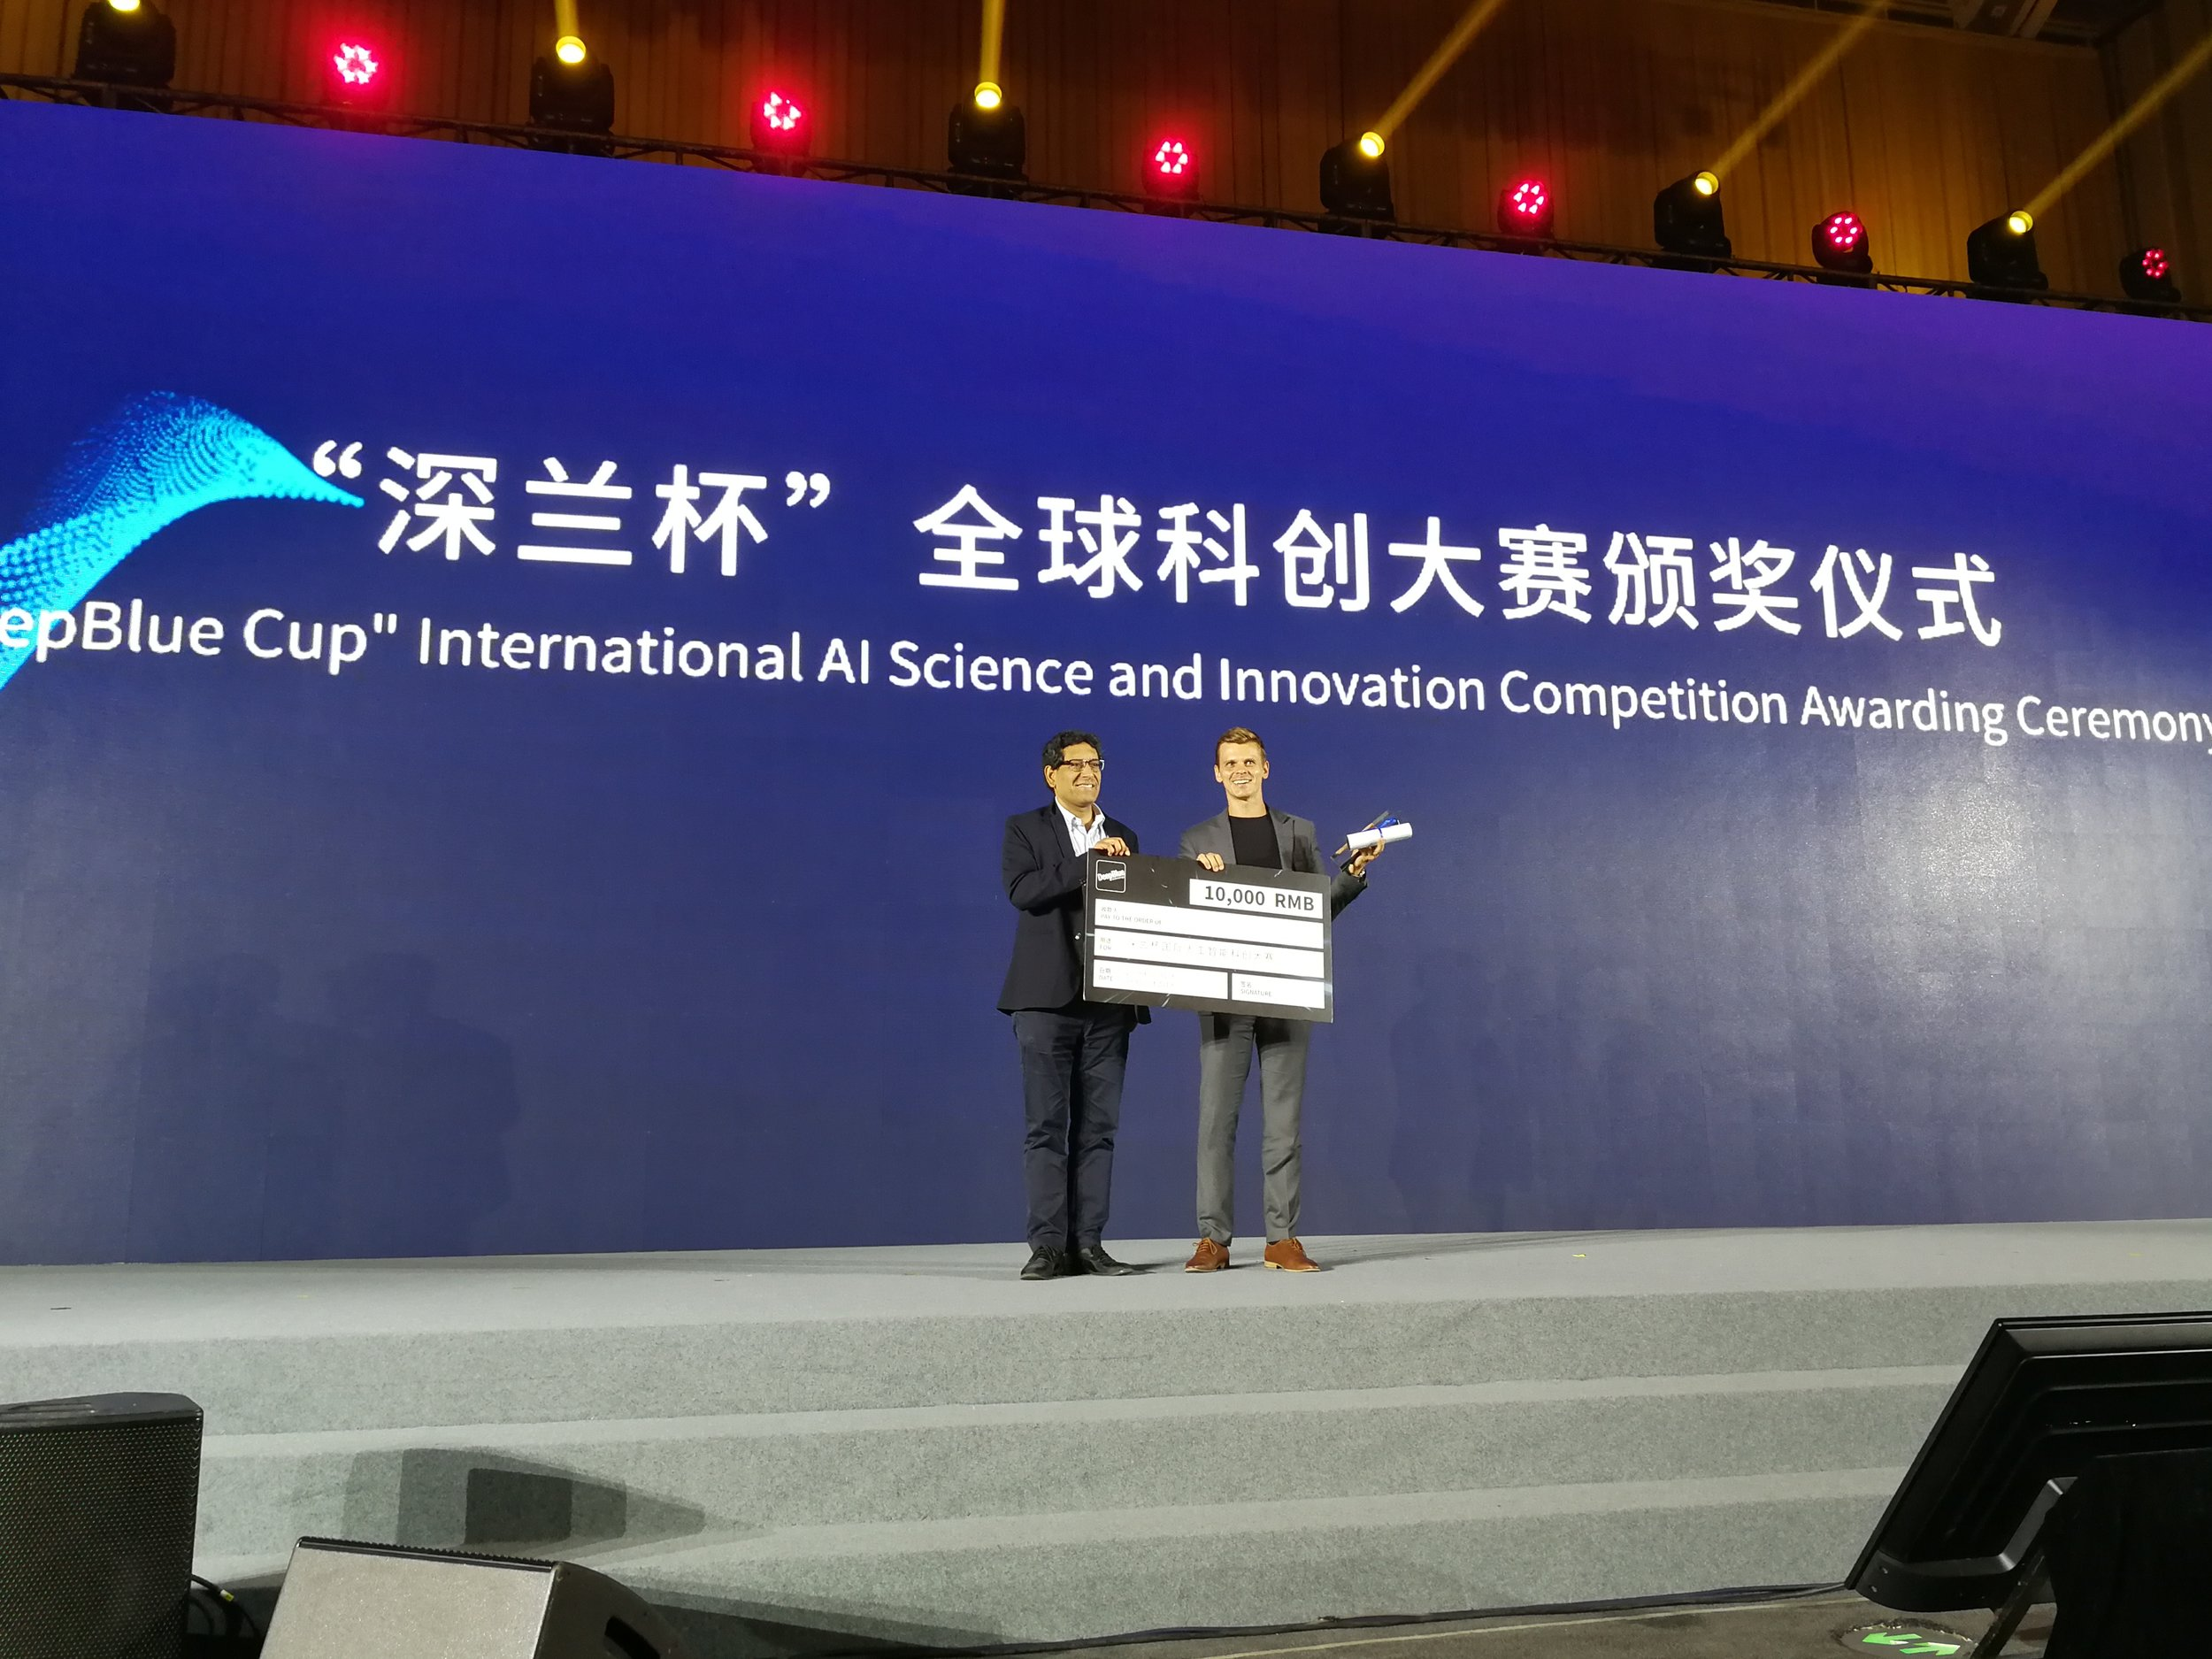 Matt Morawski holding the 10,000 RMB check and the winning certificate.